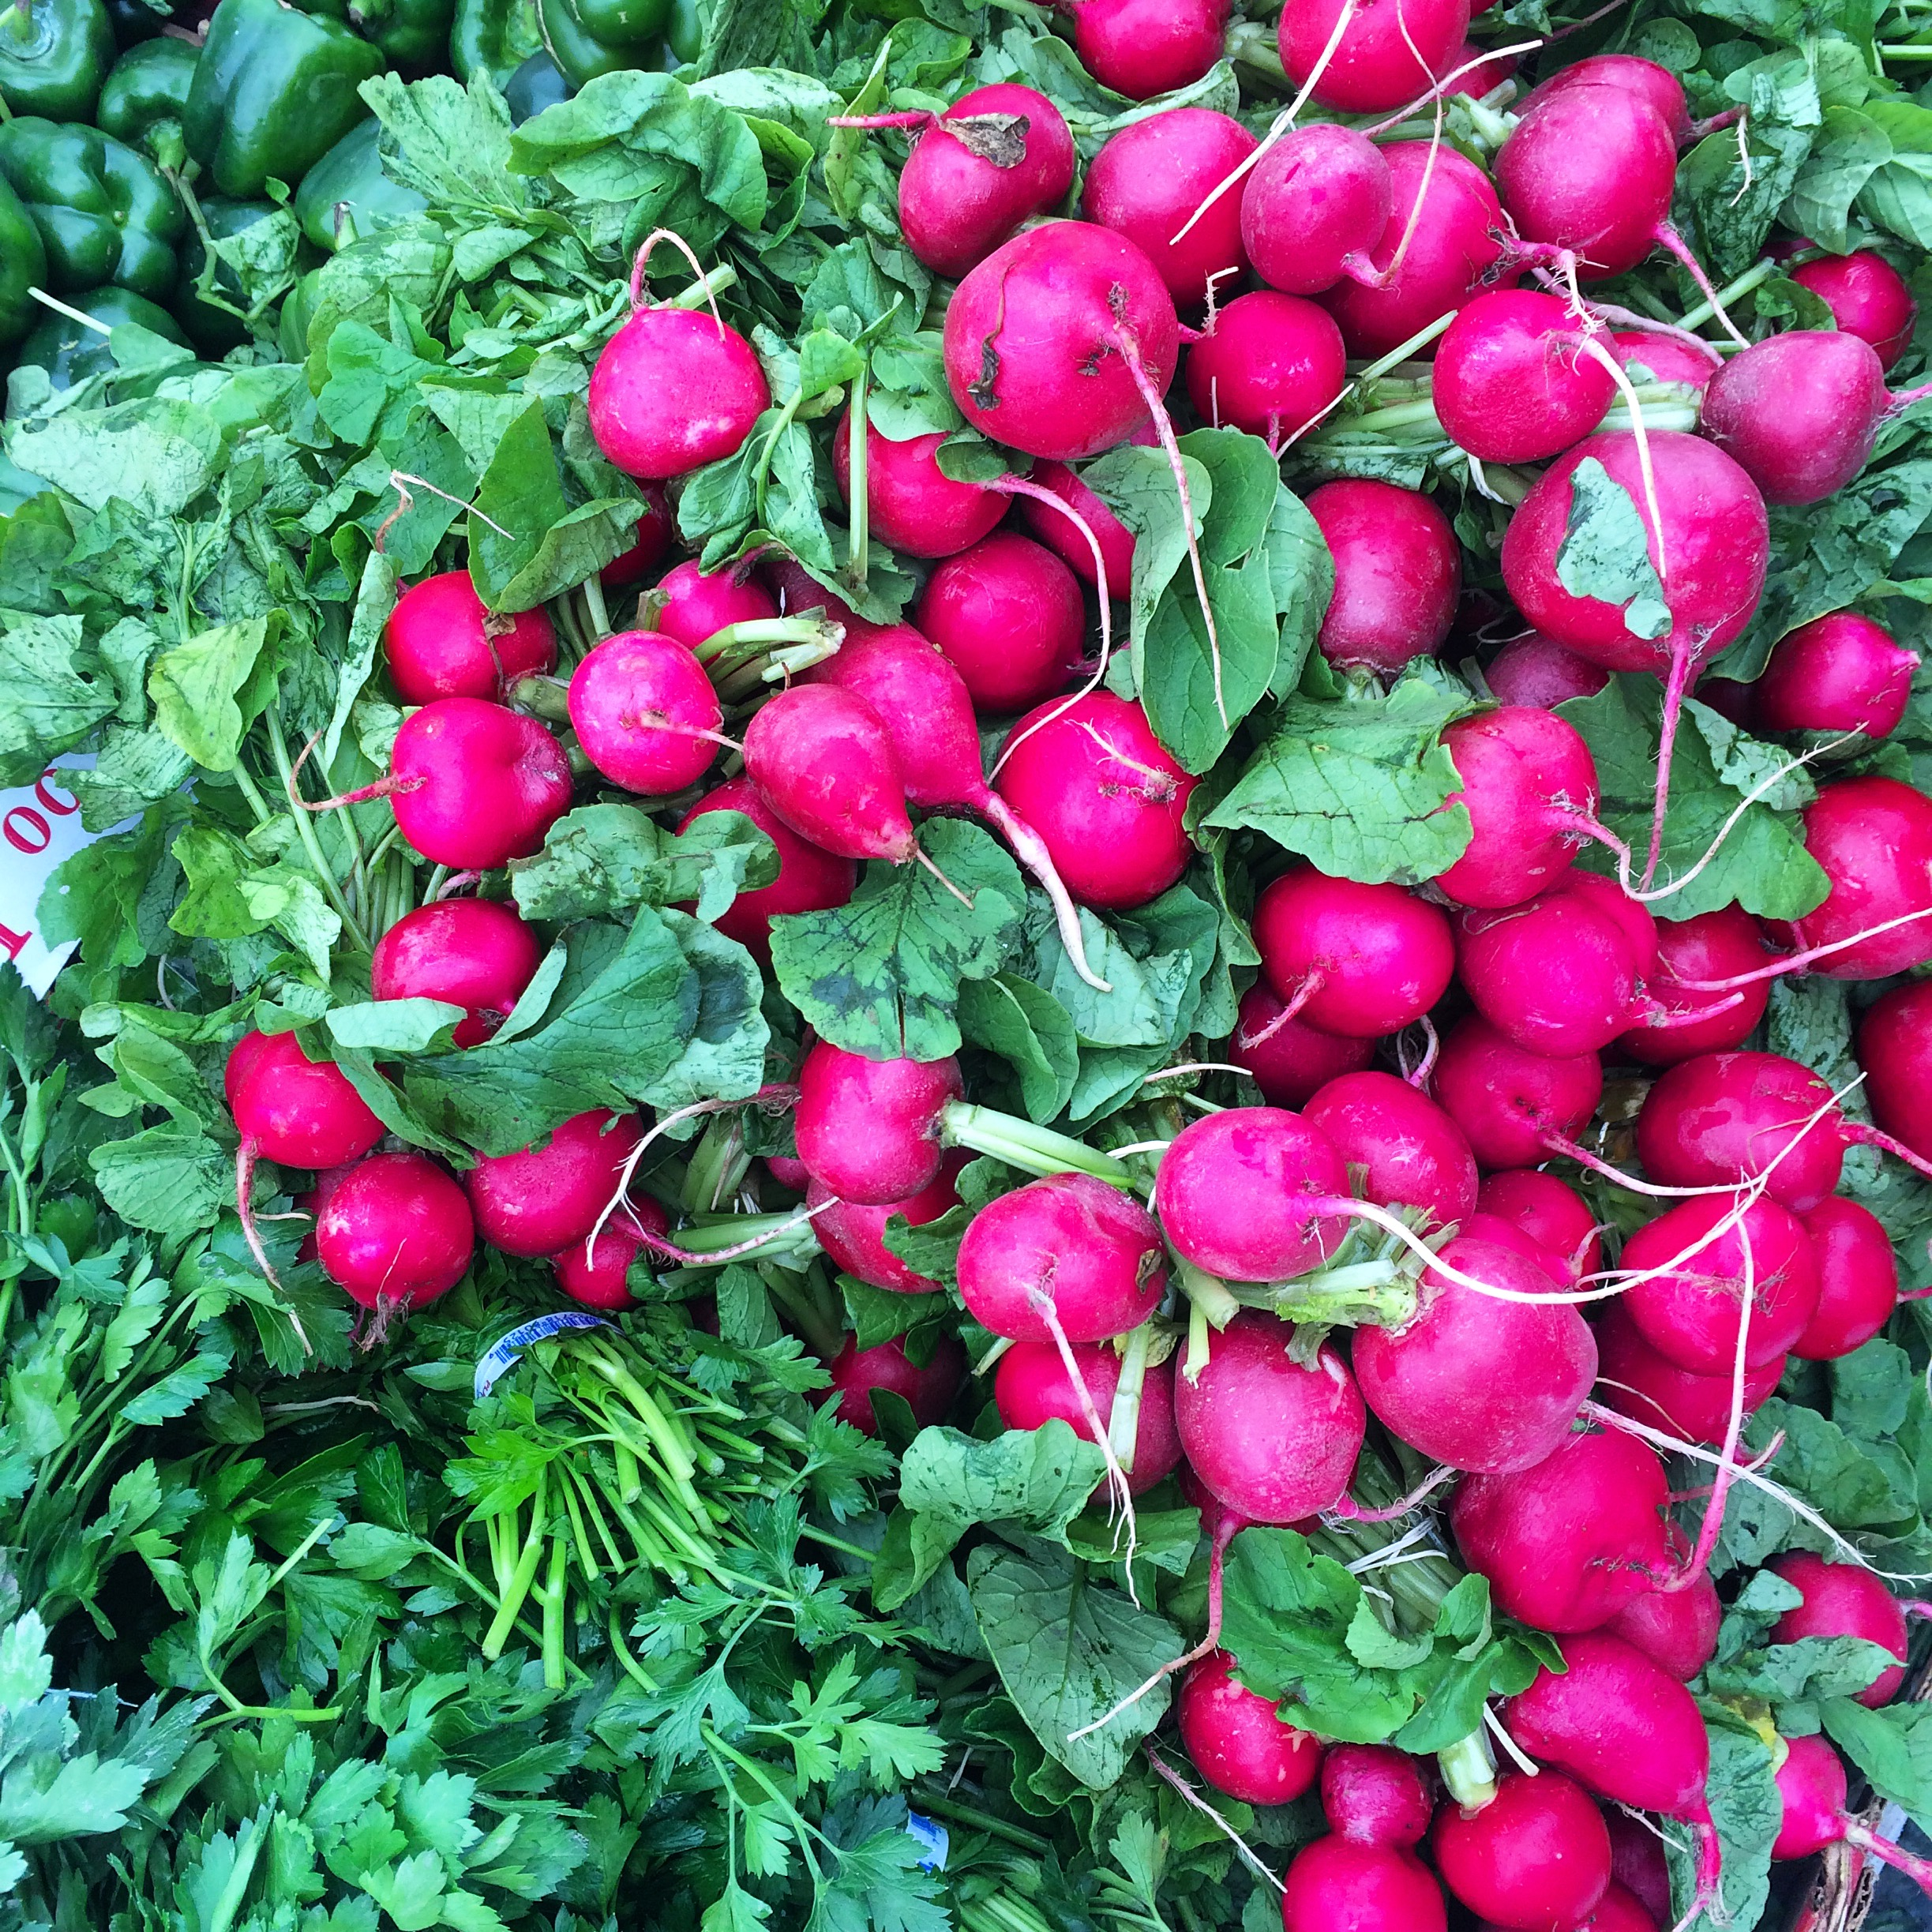 Radish are rich on Vitamin B6, fiber, copper and they are so good in wraps and tacos!